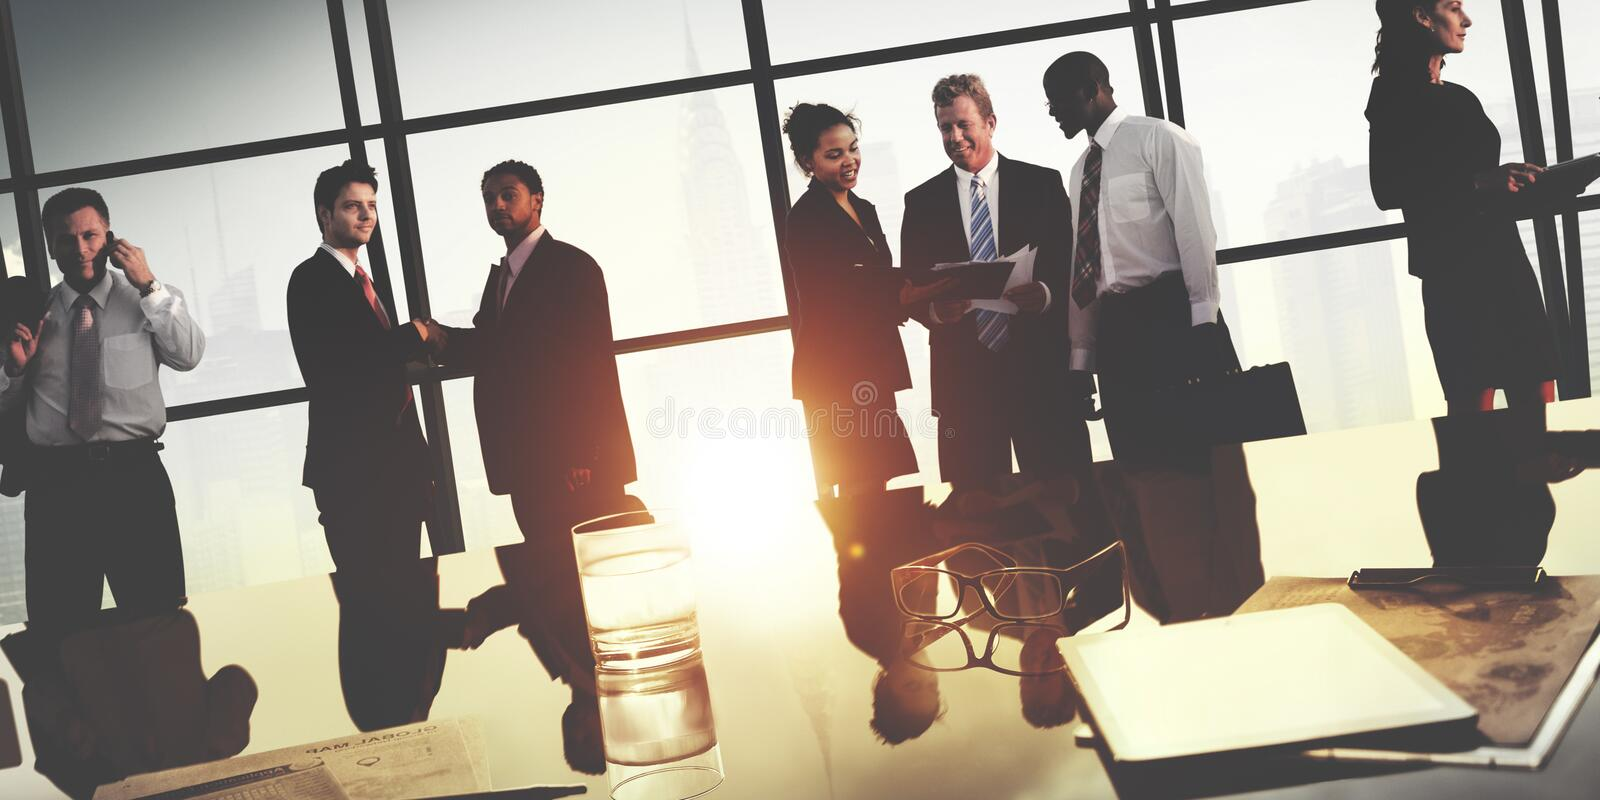 Business People Meeting Discussion Handshake Greeting Concept stock images